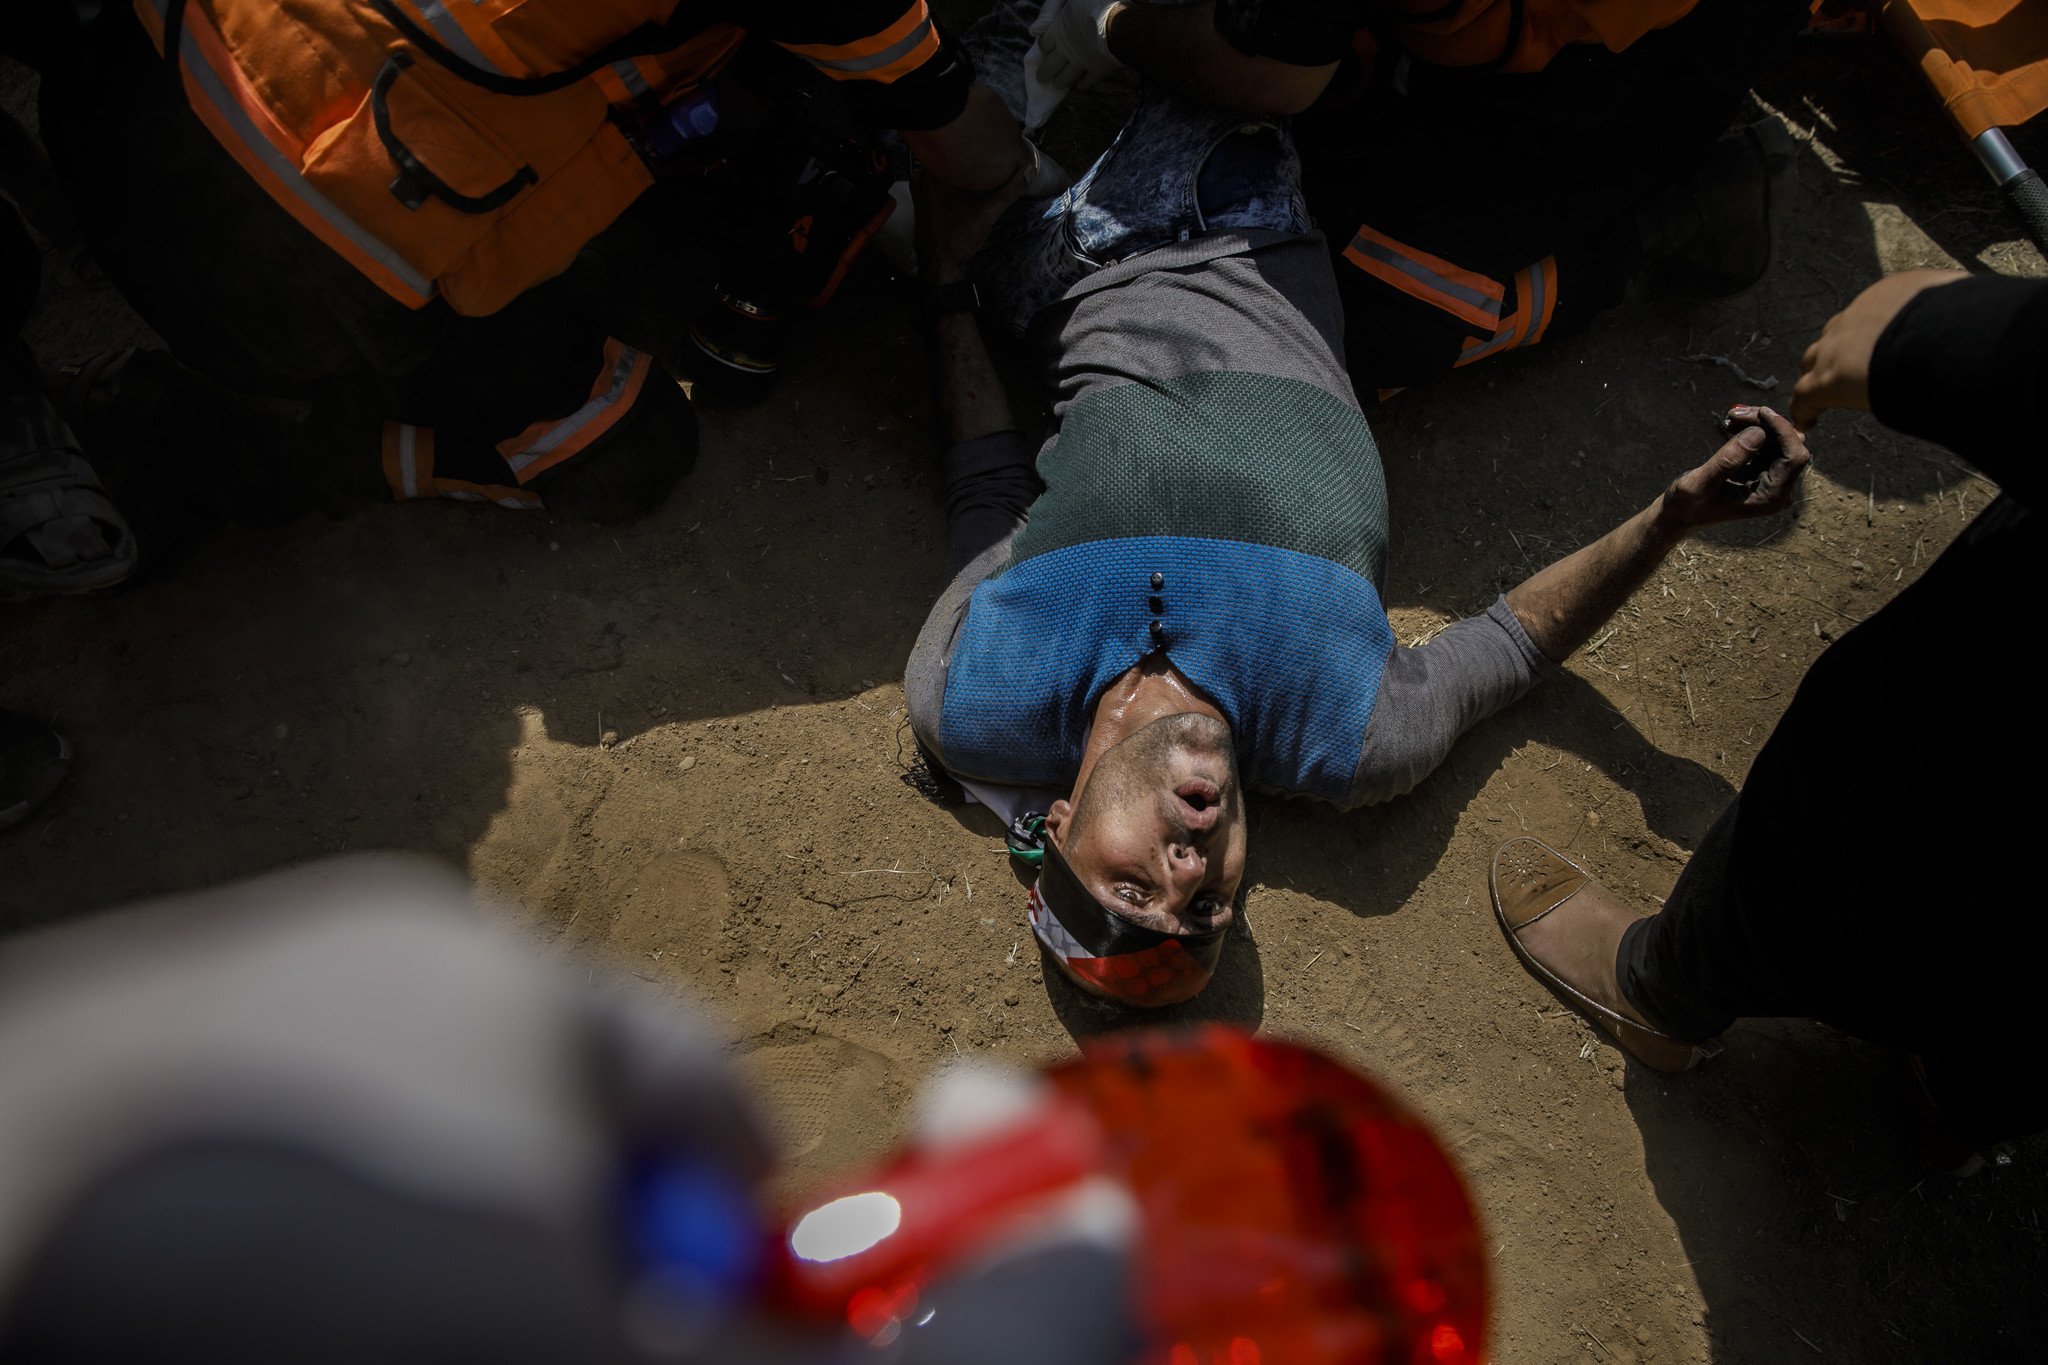 GAZA CITY, GAZA — MONDAY, MAY 14, 2018: A Palestinian man grimaces as he is treated by medics after